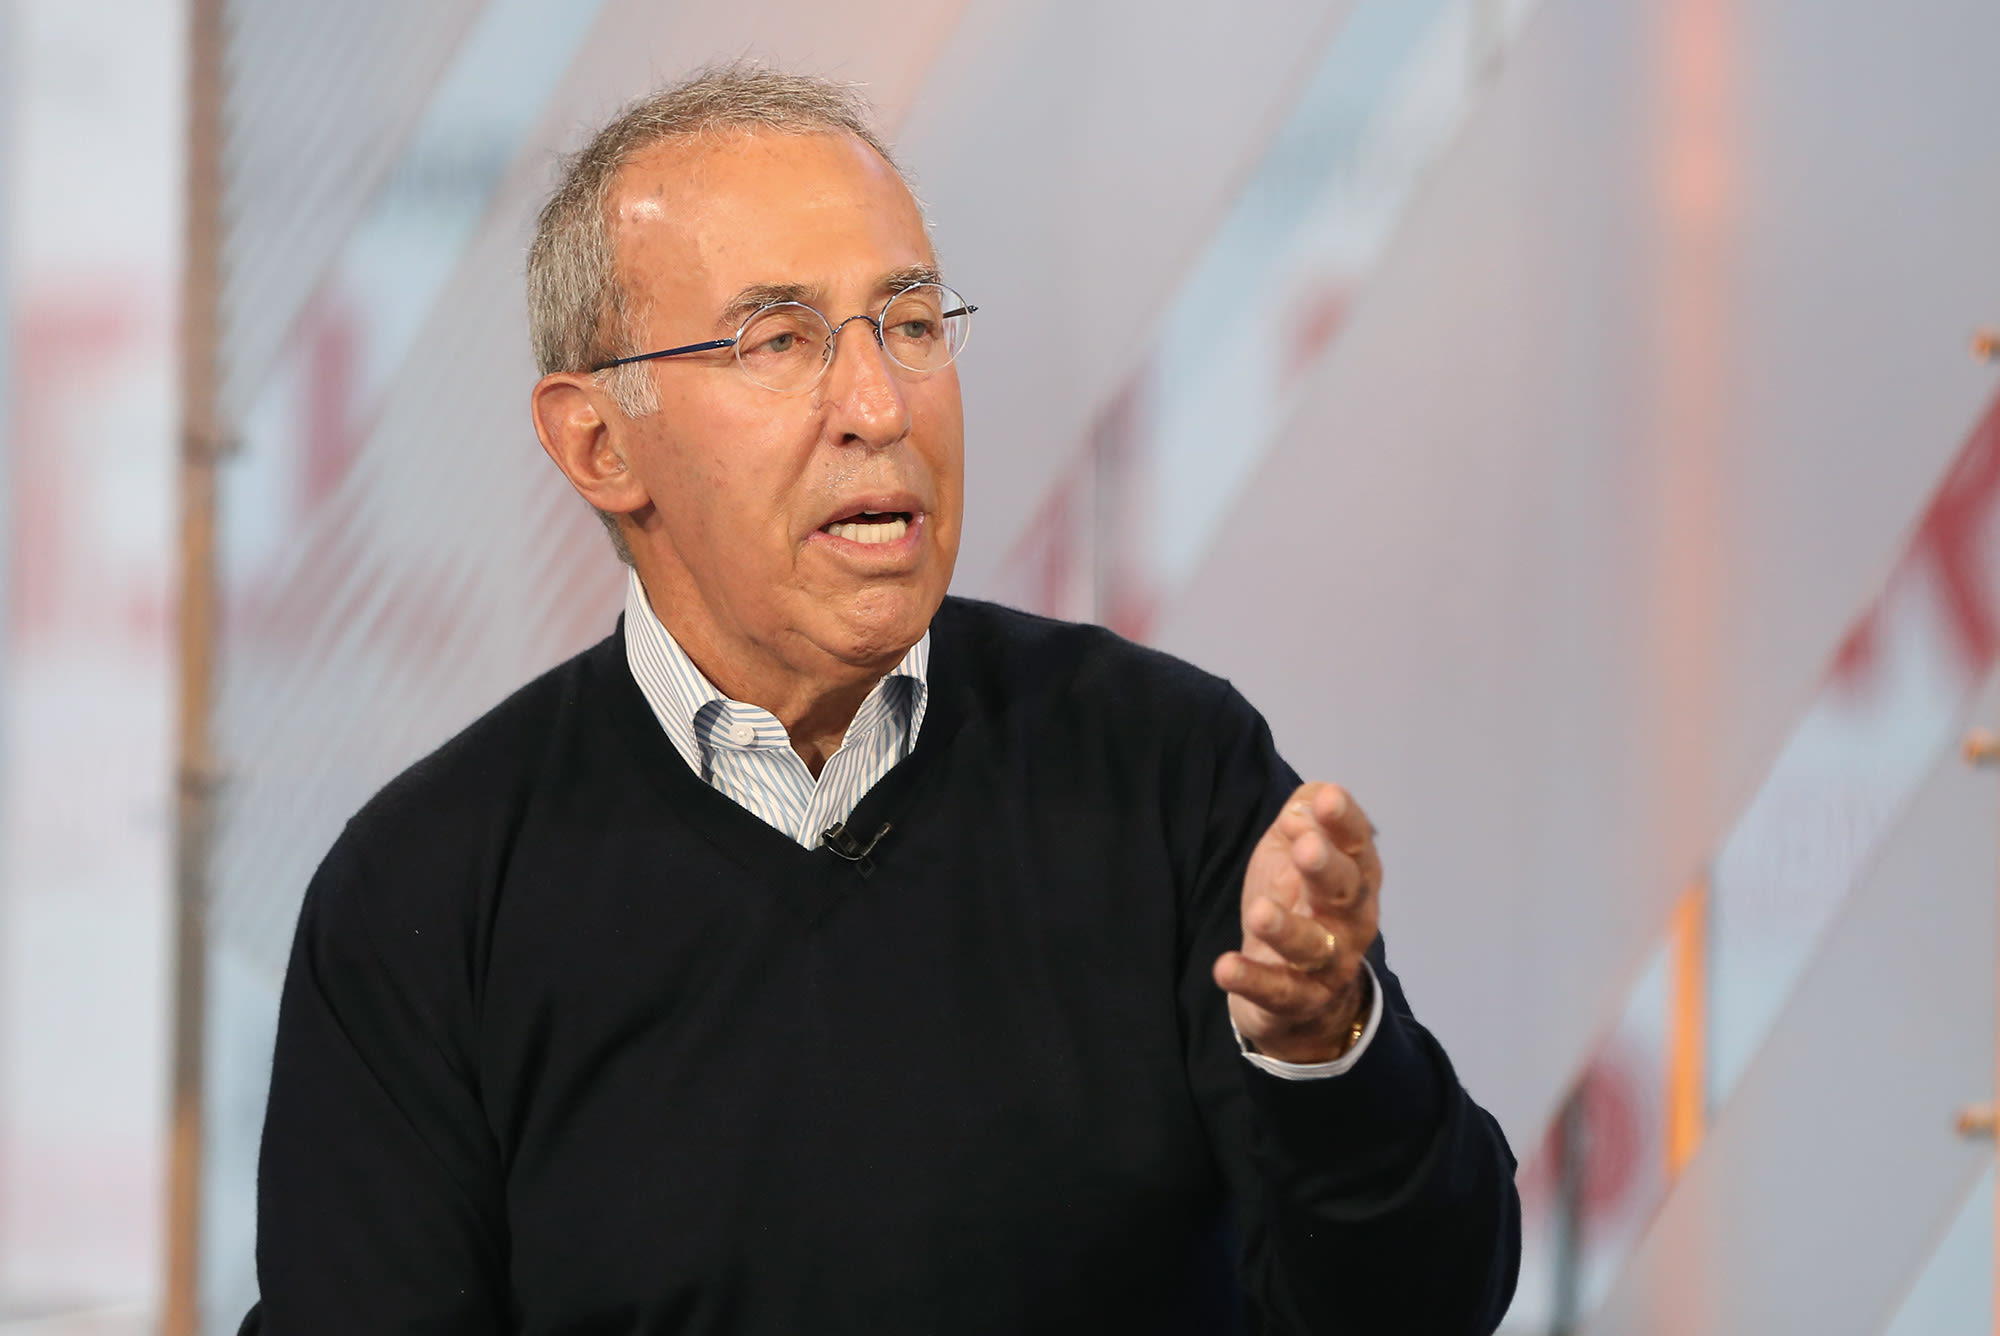 Tesla investor Ron Baron still believes in Elon Musk despite 'some self-inflicted wounds'